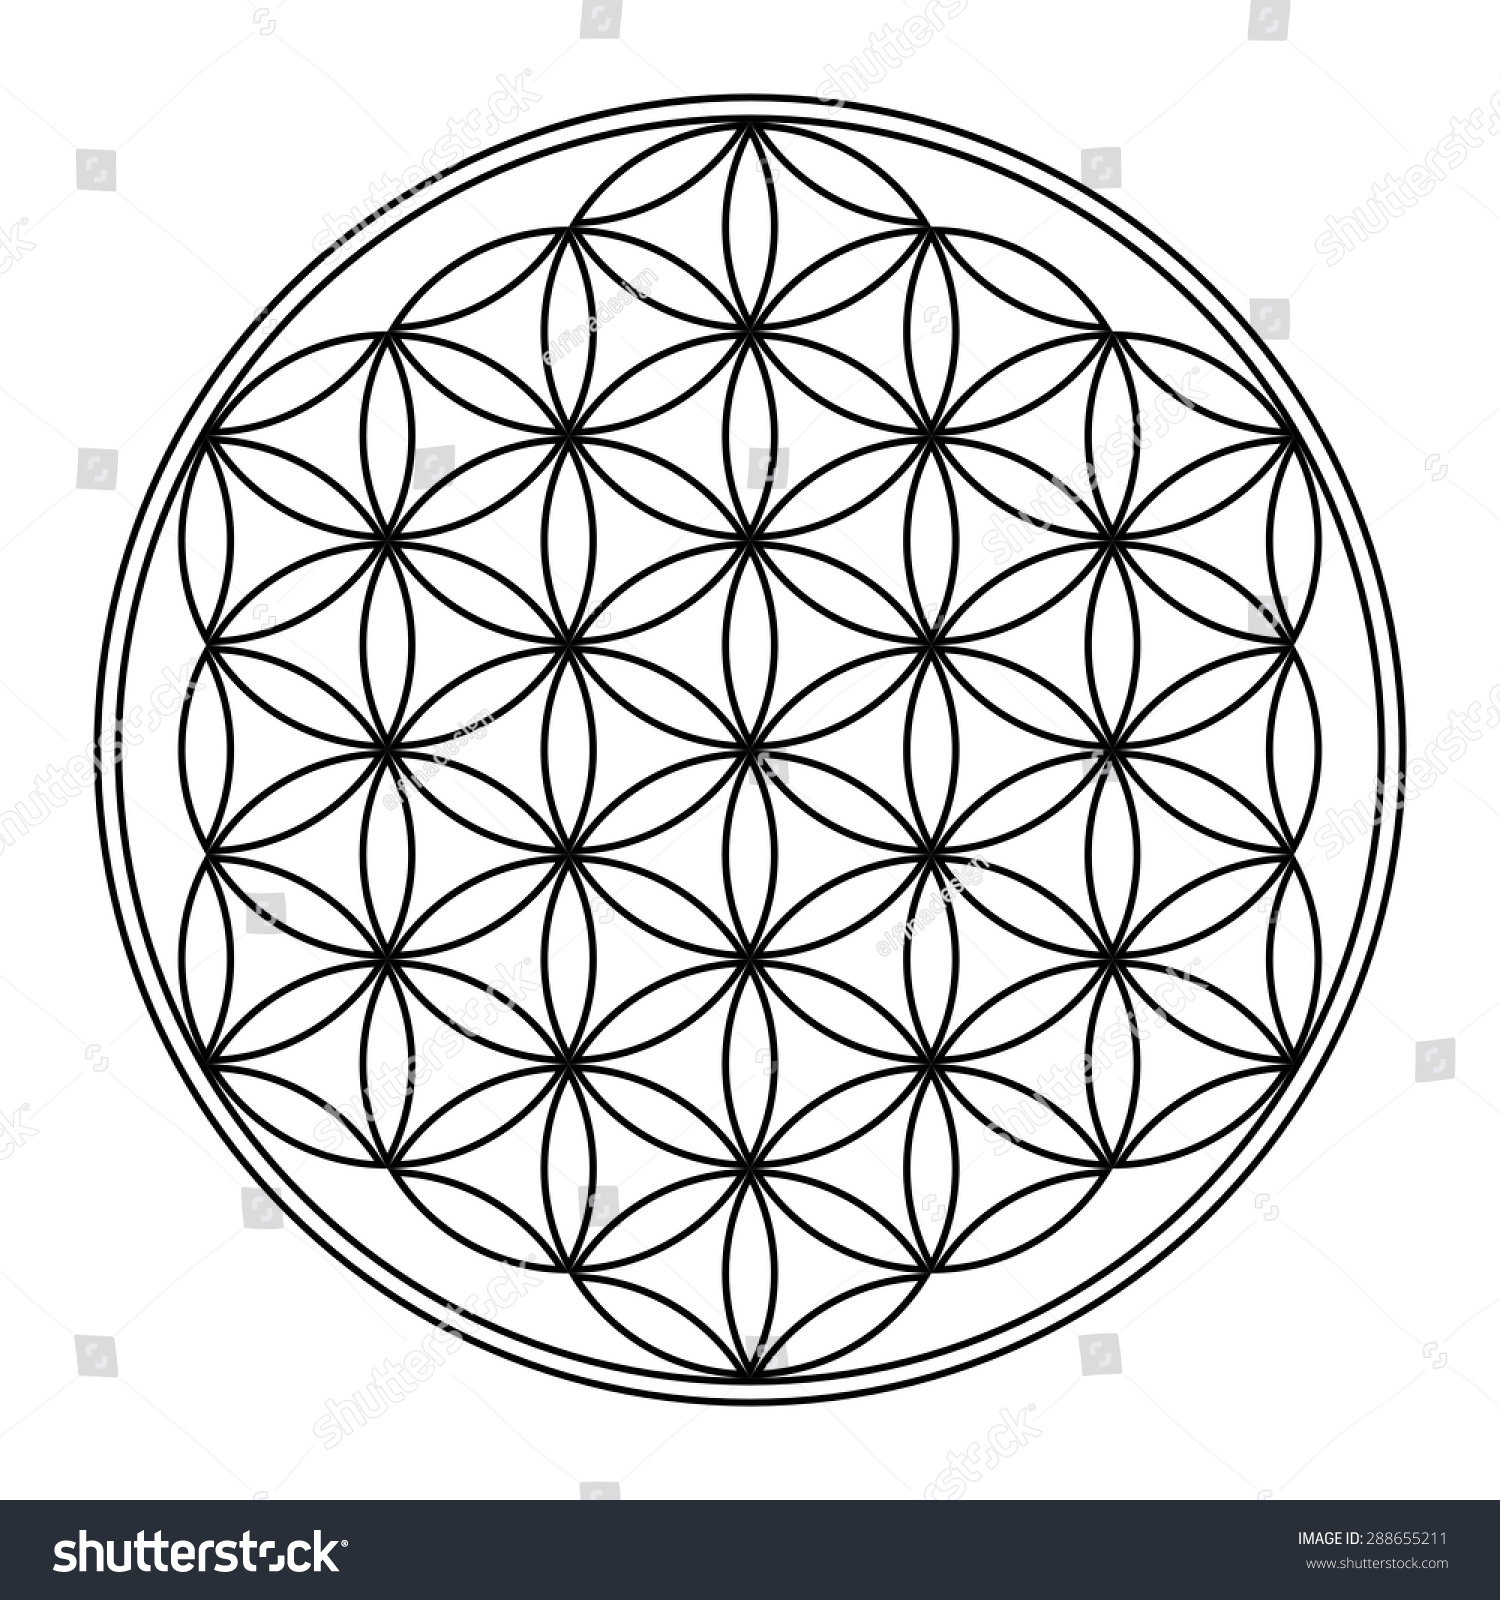 flower life vector sacred geometry spiritual stock vector 2018 rh shutterstock com flower of life vector ai flower of life vector pattern